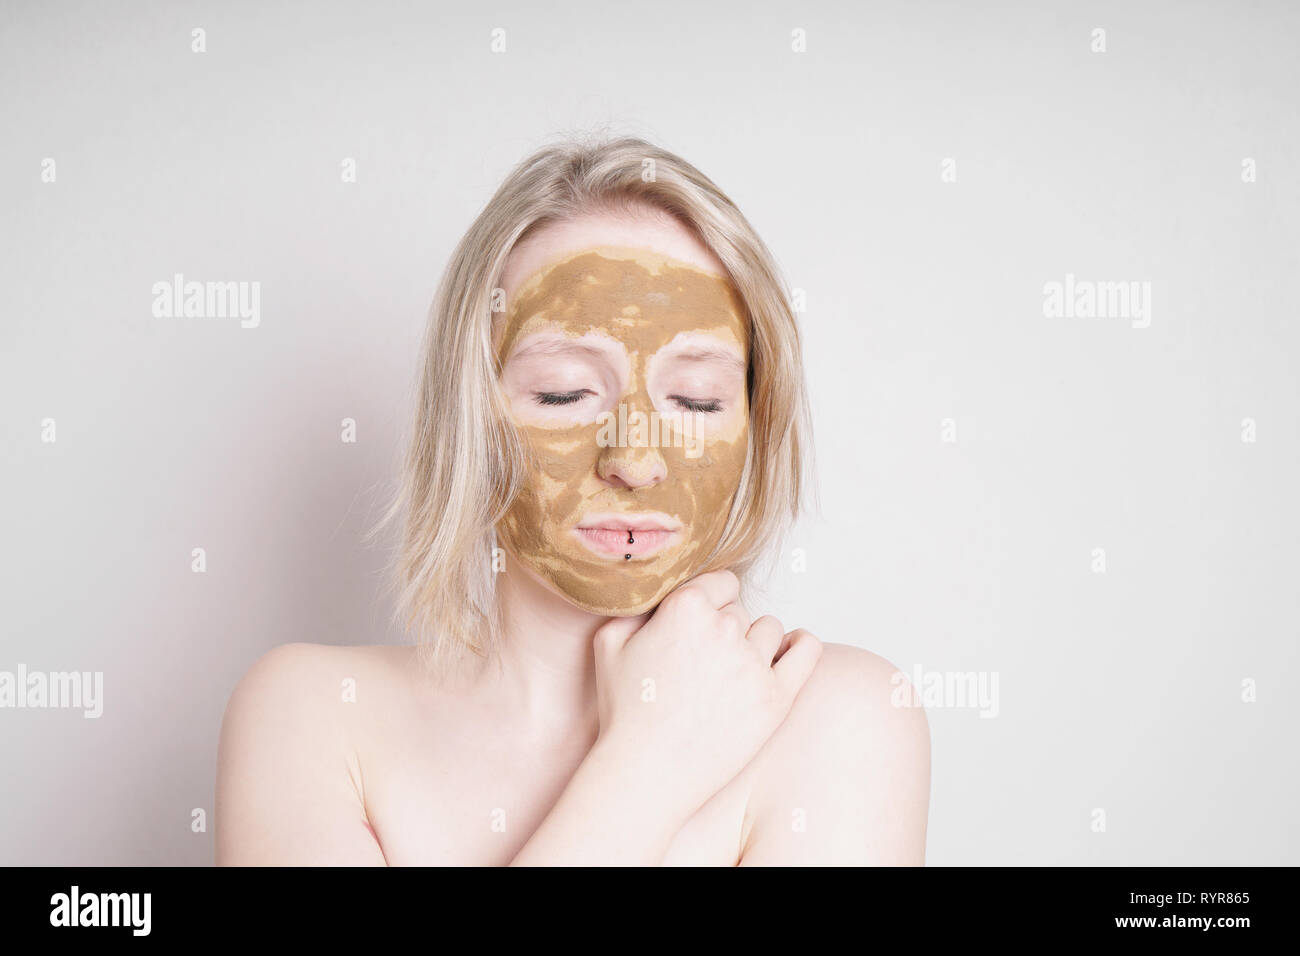 young woman with healing earth or clay beauty facial mask enjoying wellness treatment - a natural ayurveda treatment for acne or oily skin - Stock Image